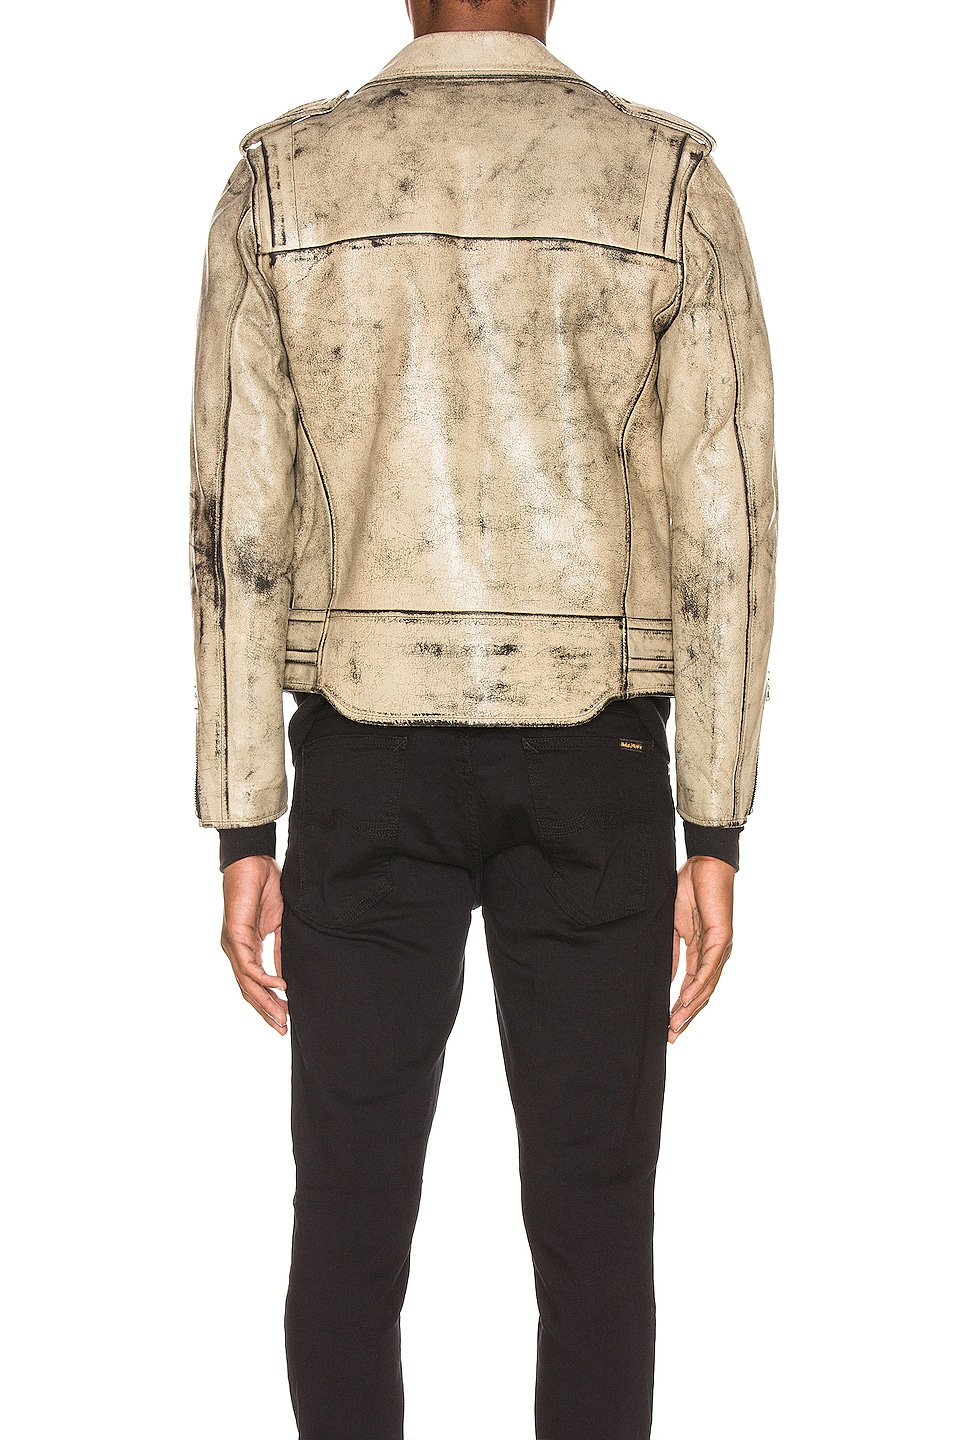 Image 5 of JOHN ELLIOTT x Blackmeans Rider's Jacket in Black & Ivory Paint